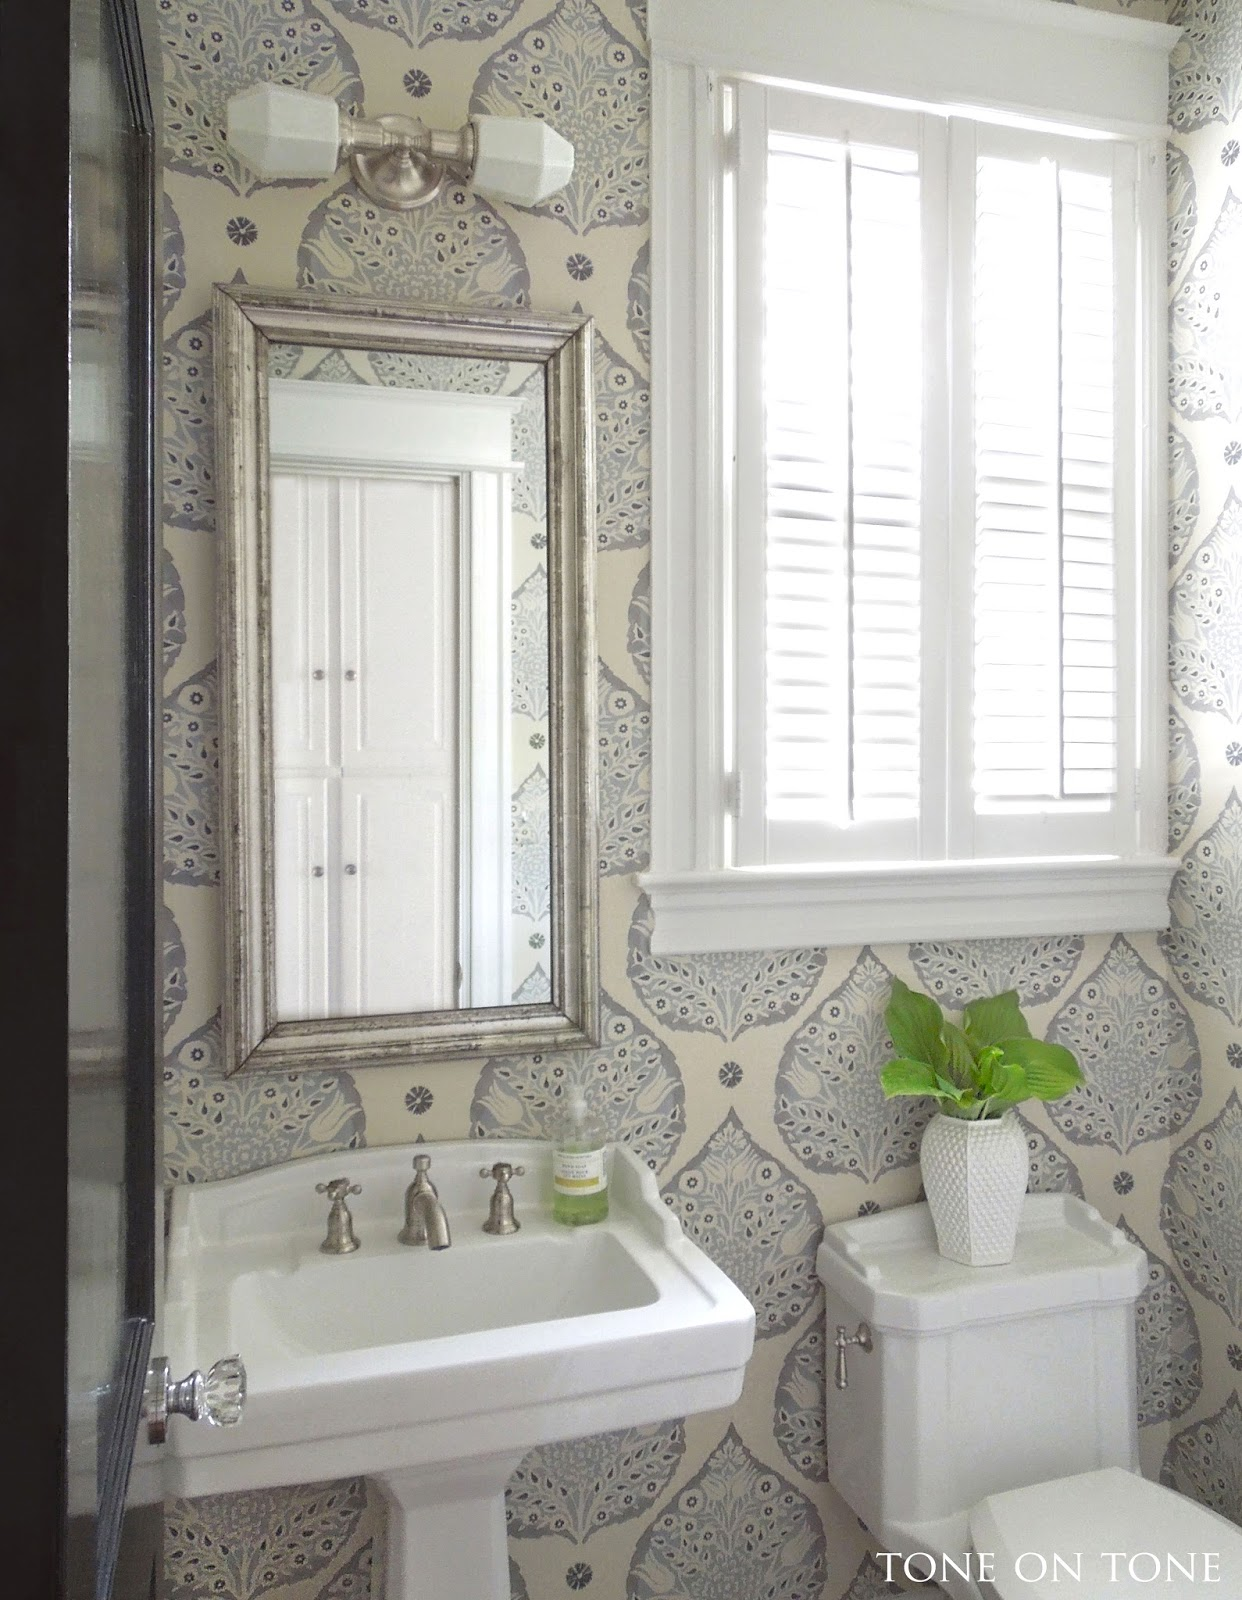 Tiny Powder Room Designs: Interior & Garden Design: Powder Room